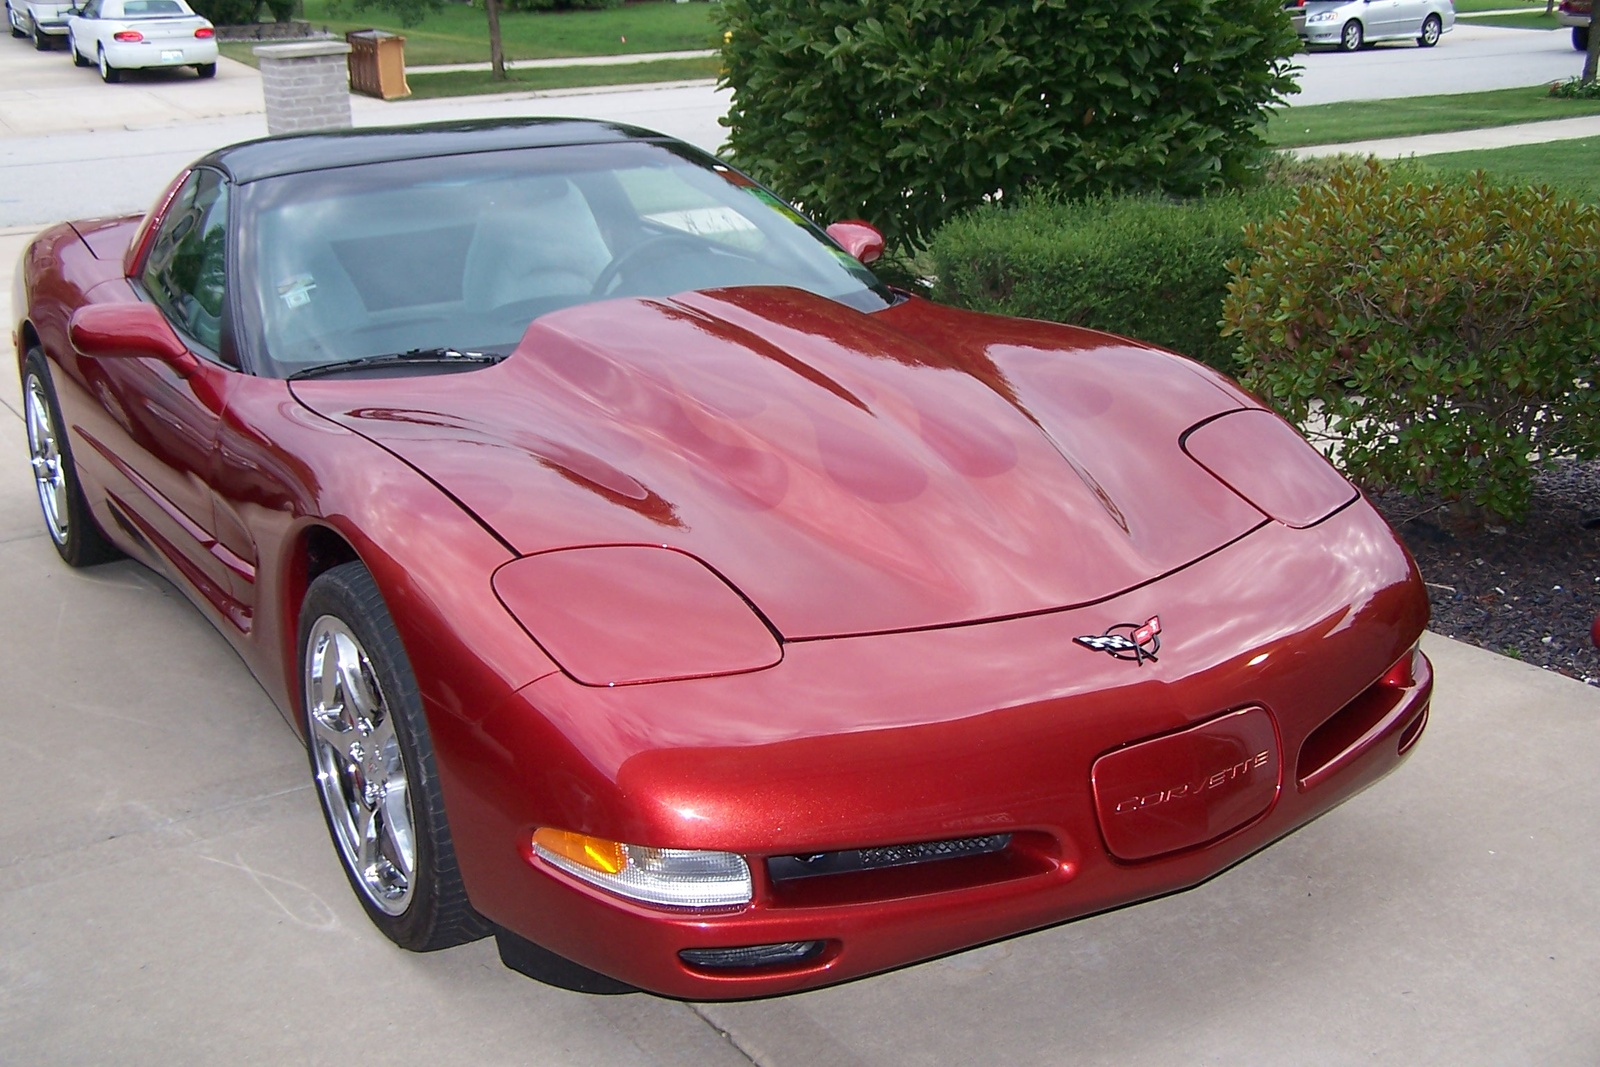 1997 Chevrolet Corvette Base, 1997 Chevrolet Corvette 2 Dr STD Hatchback picture, exterior